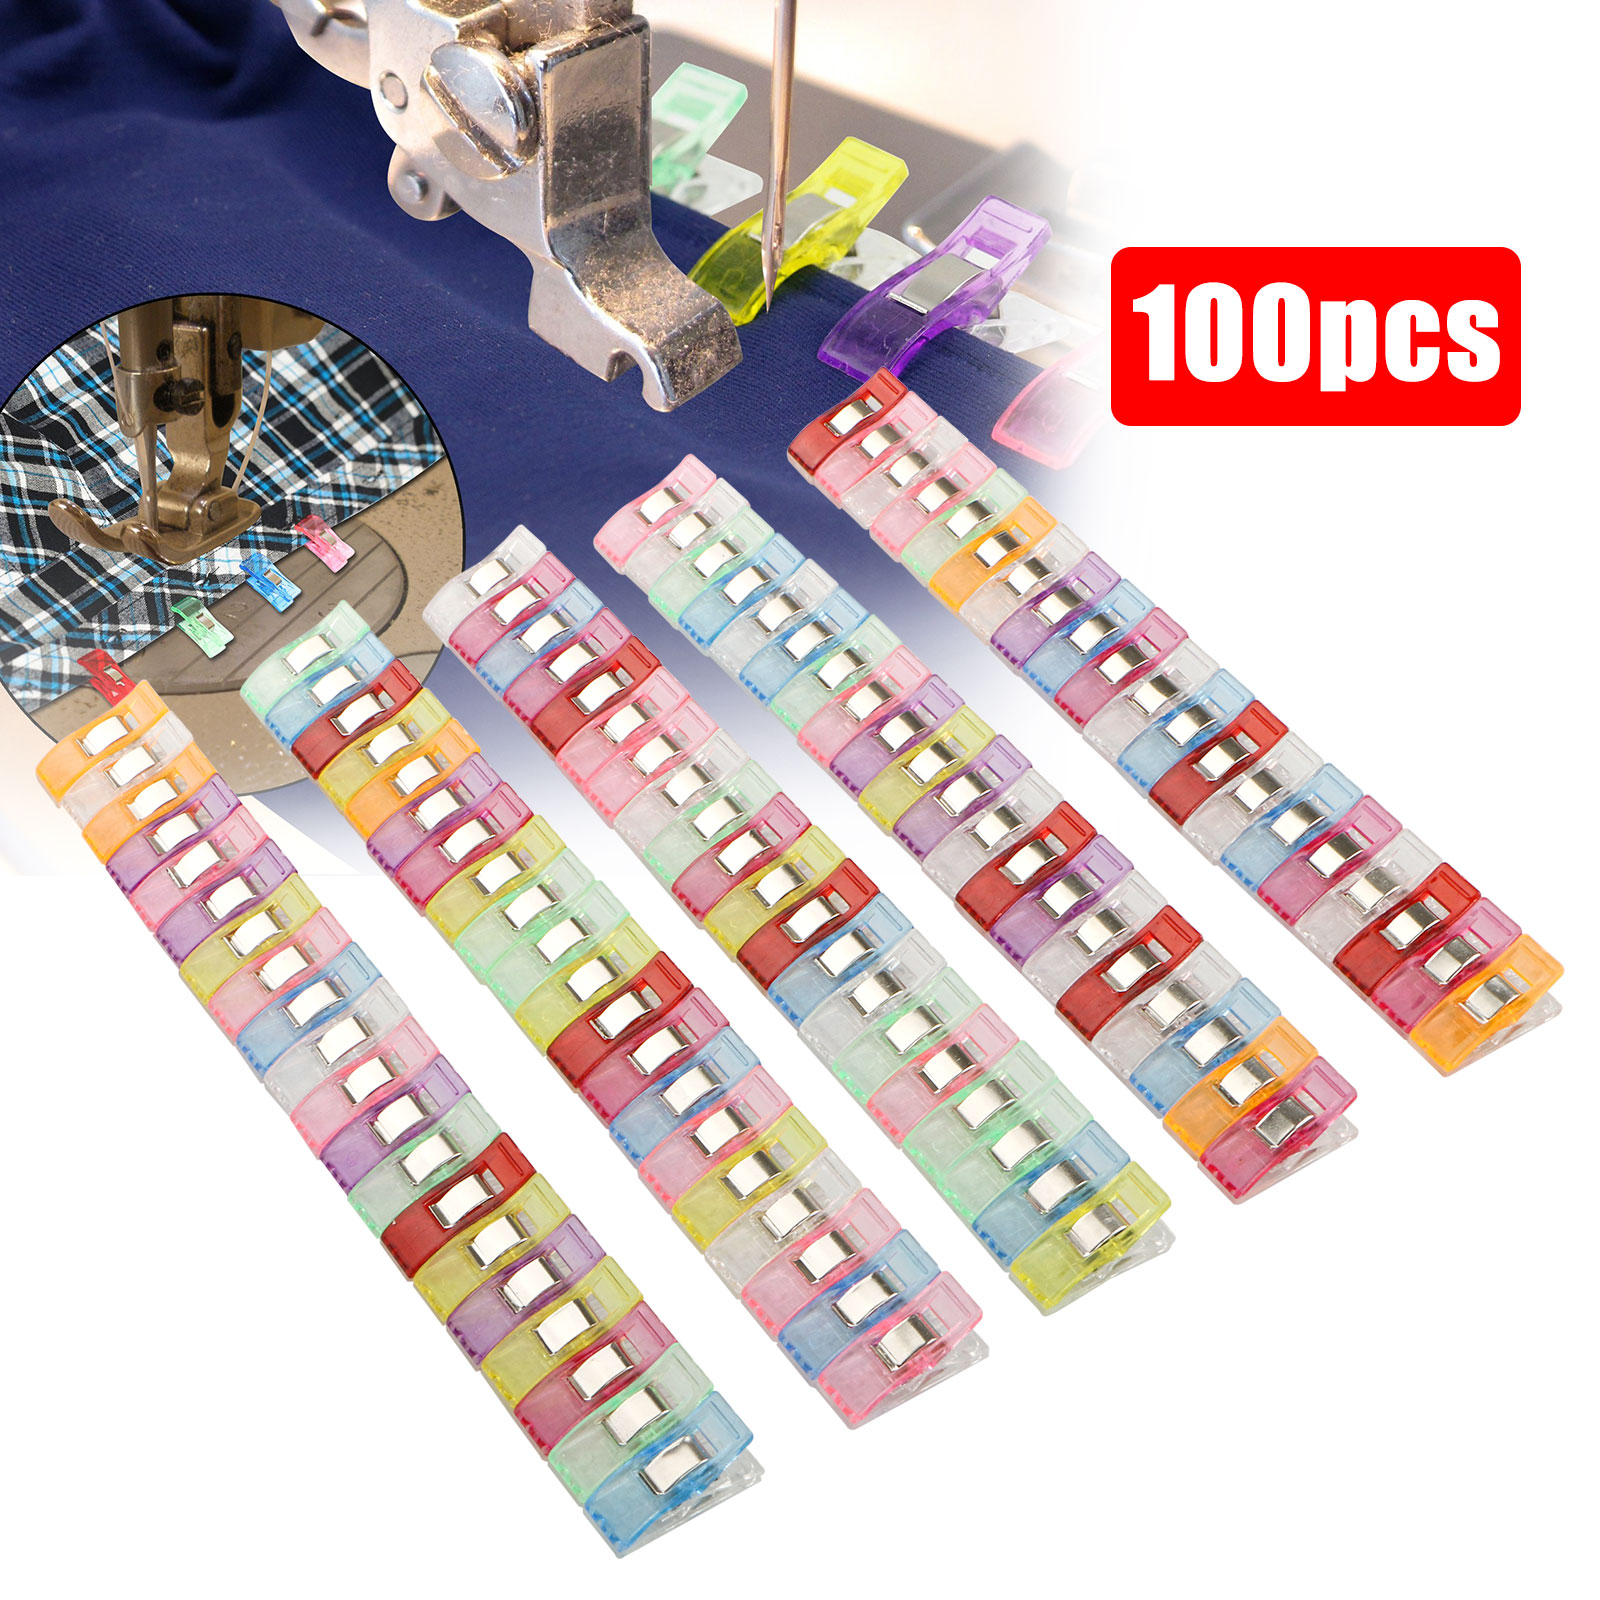 Growlier 100 Pack Multicolor Sewing Clip for Sewing Binding Quilting Crafting